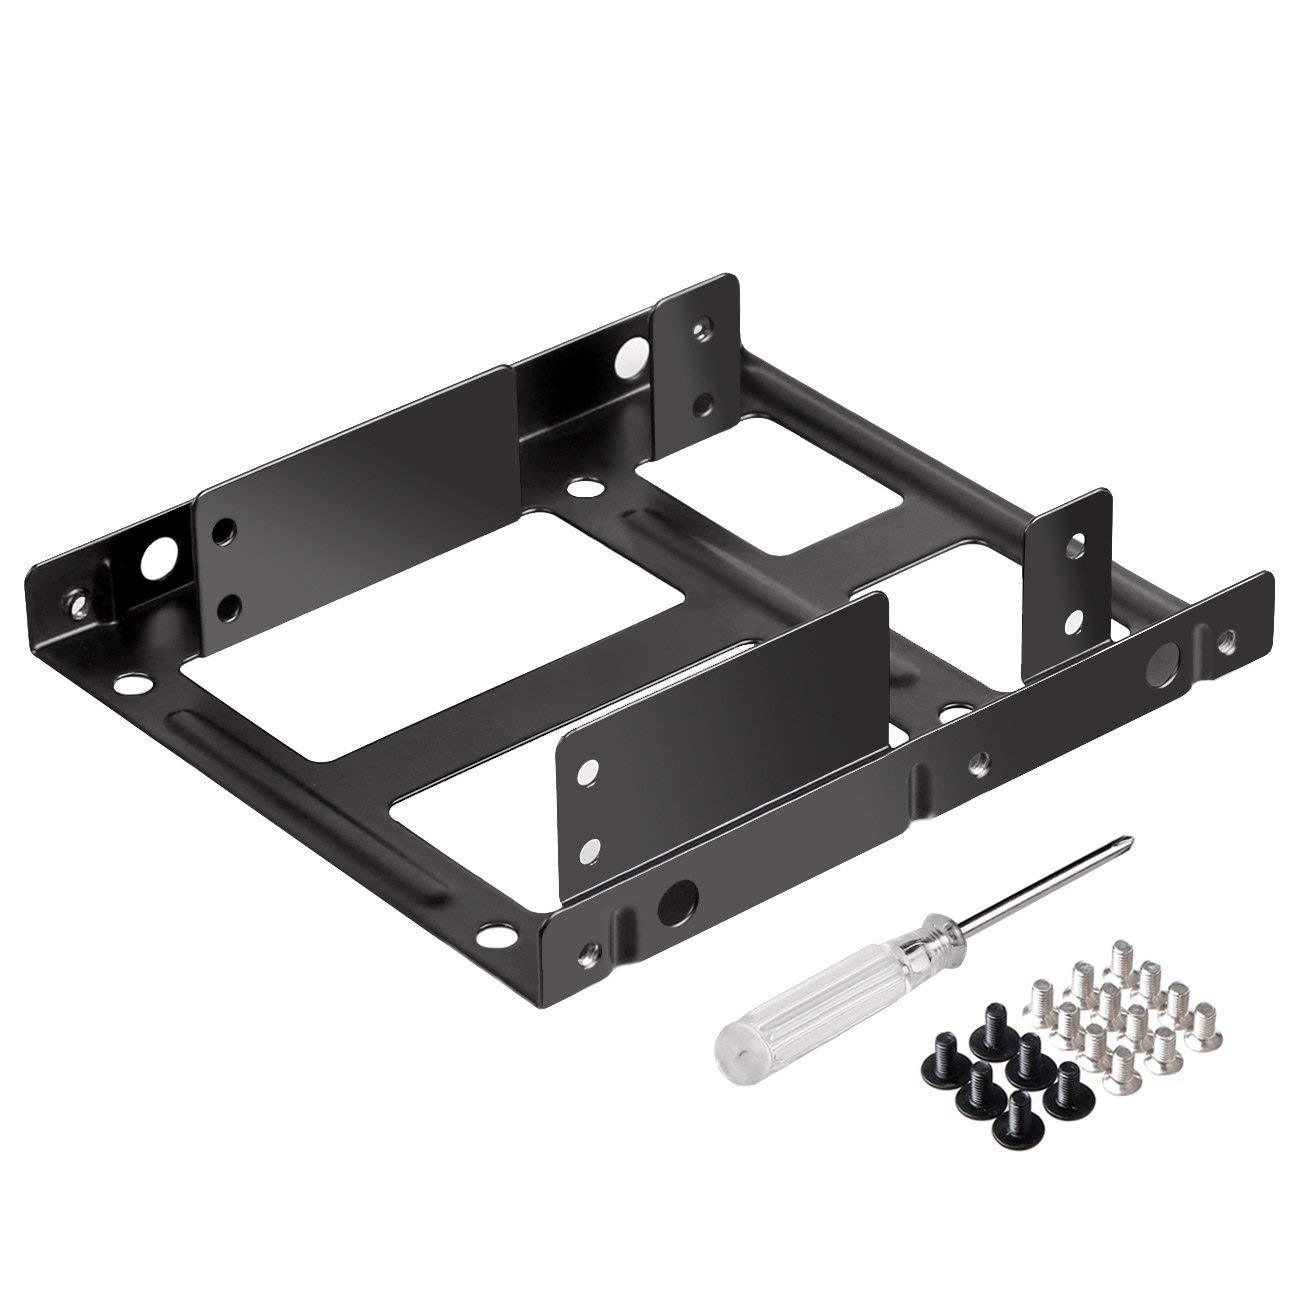 2.5 Inch to 3.5 Inch External HDD SSD Metal Mounting Kit Adapter Bracket with SATA Data Power Cables & Screws Without line